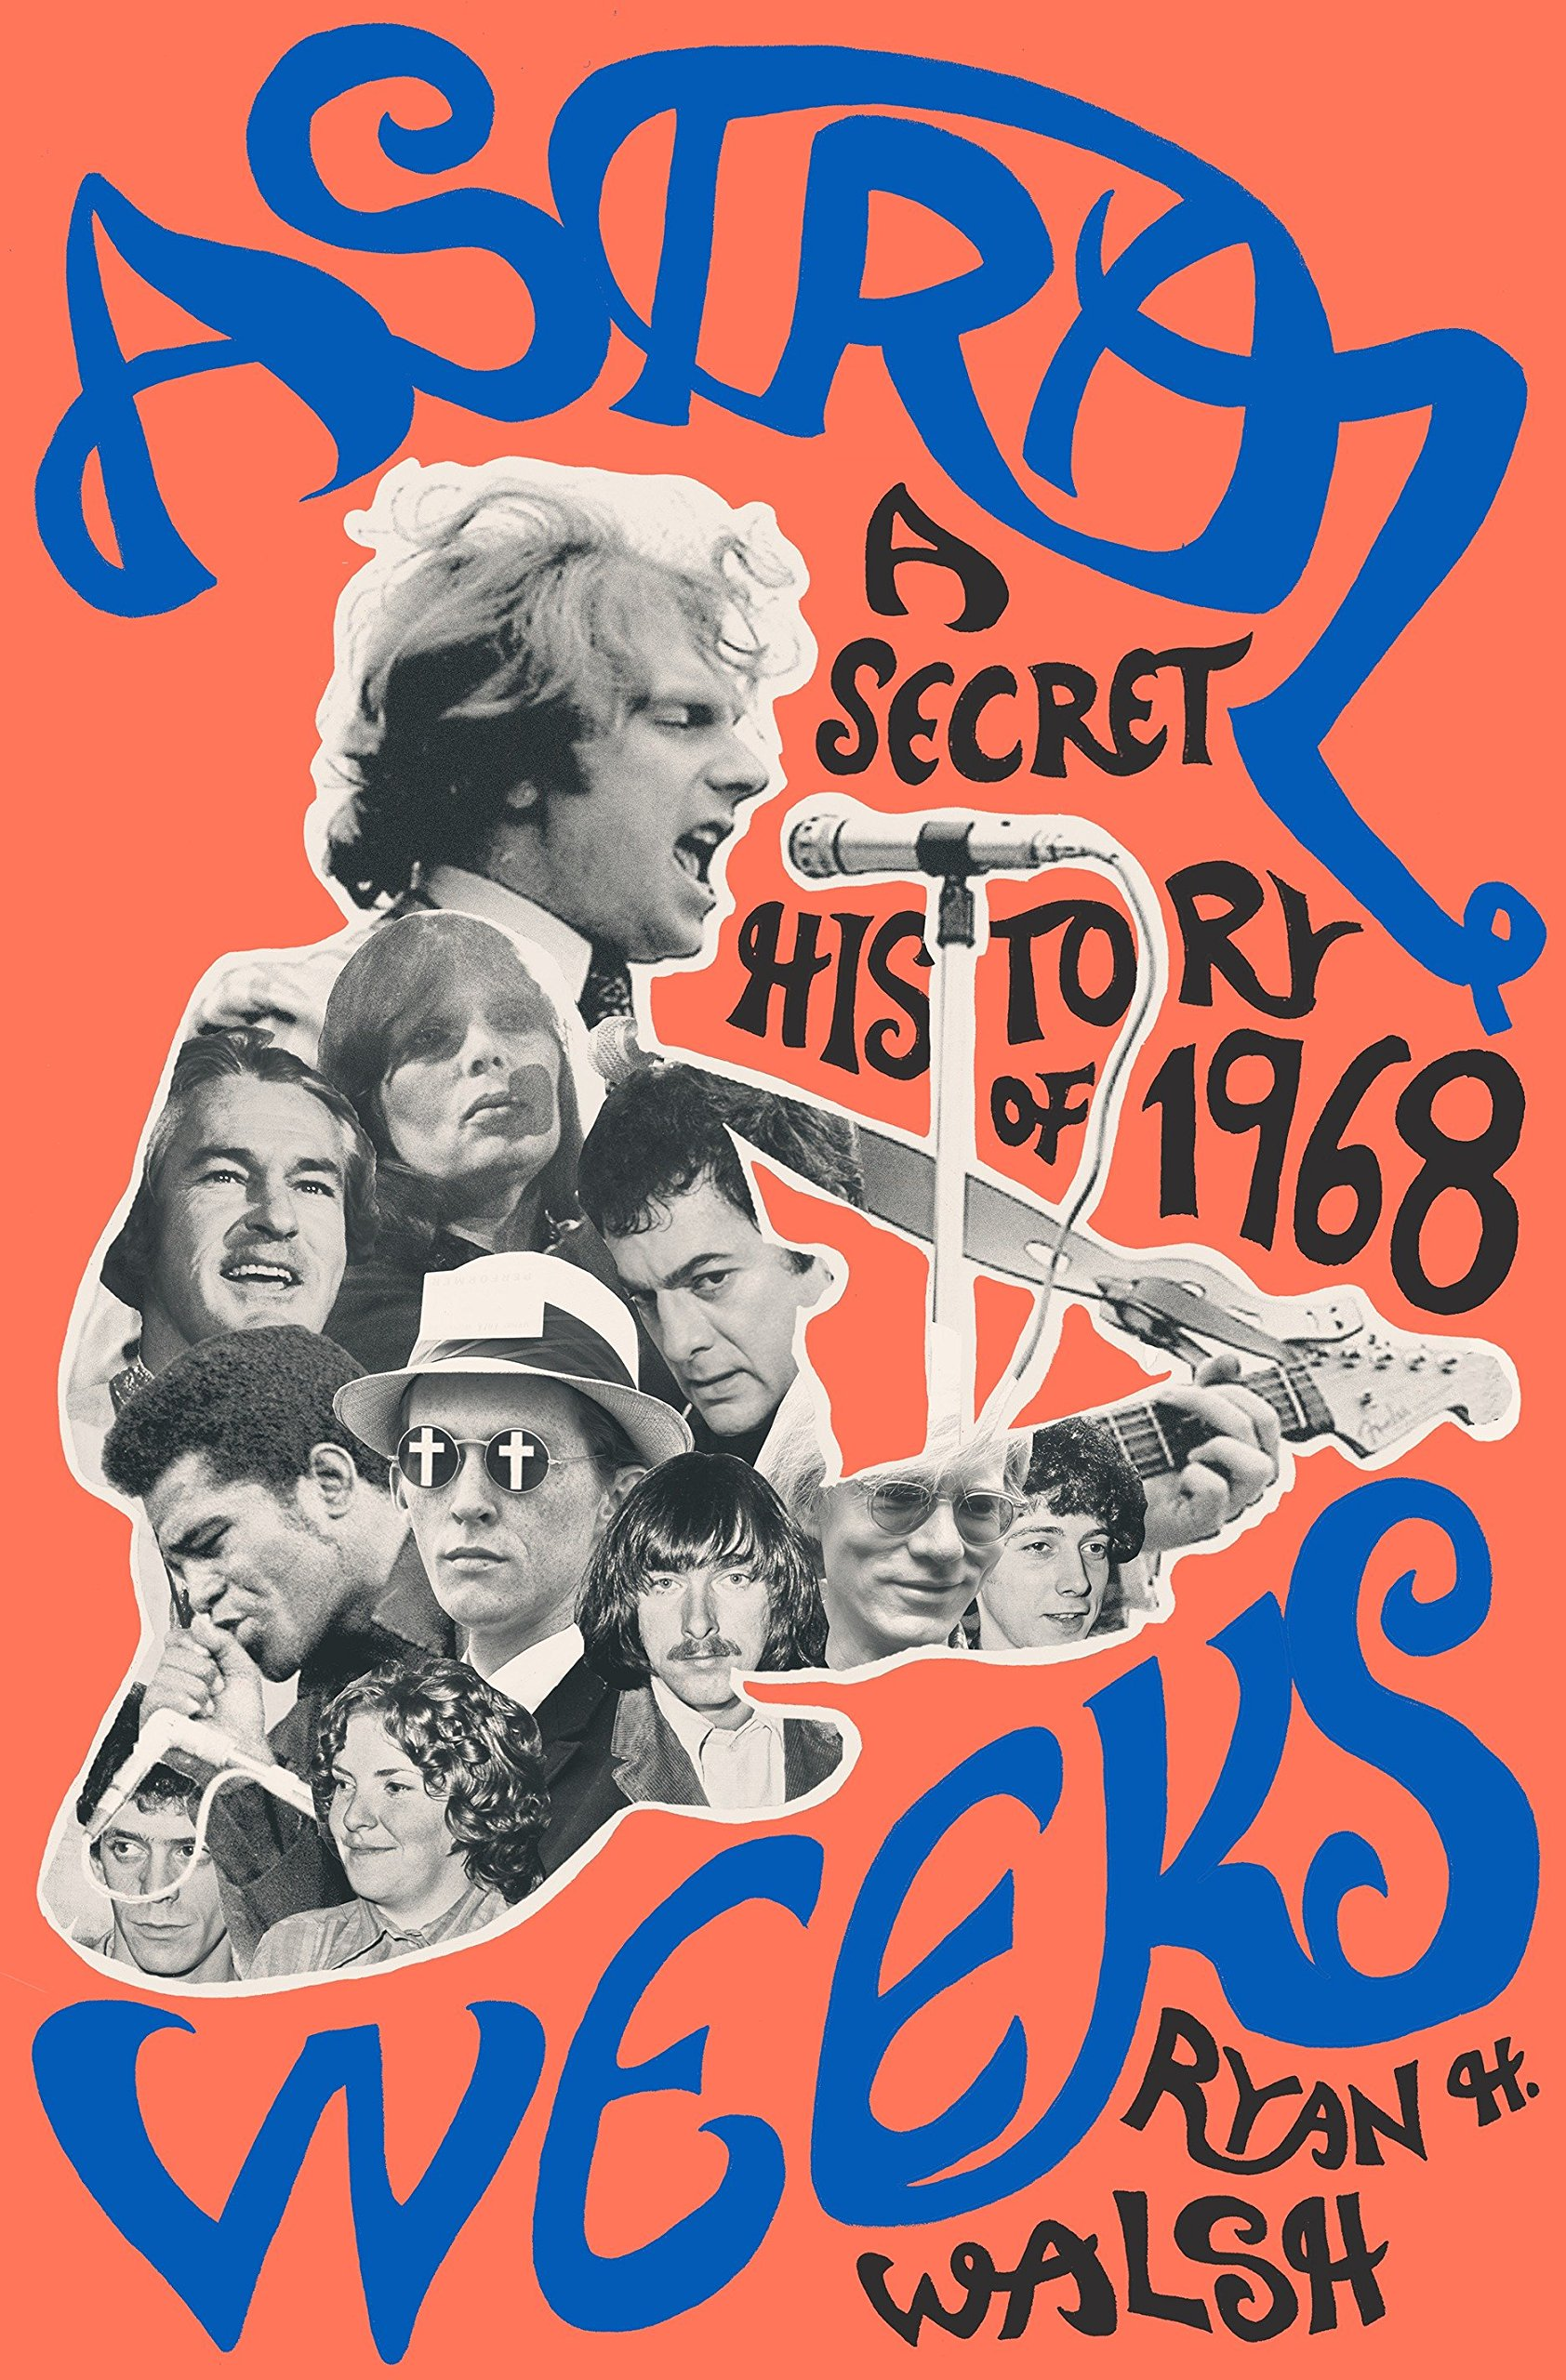 Promotional image for Martin Bandyke Under Covers for July 2018: Martin talks to author Ryan H. Walsh about Astral Weeks: A Secret History of 1968. podcast